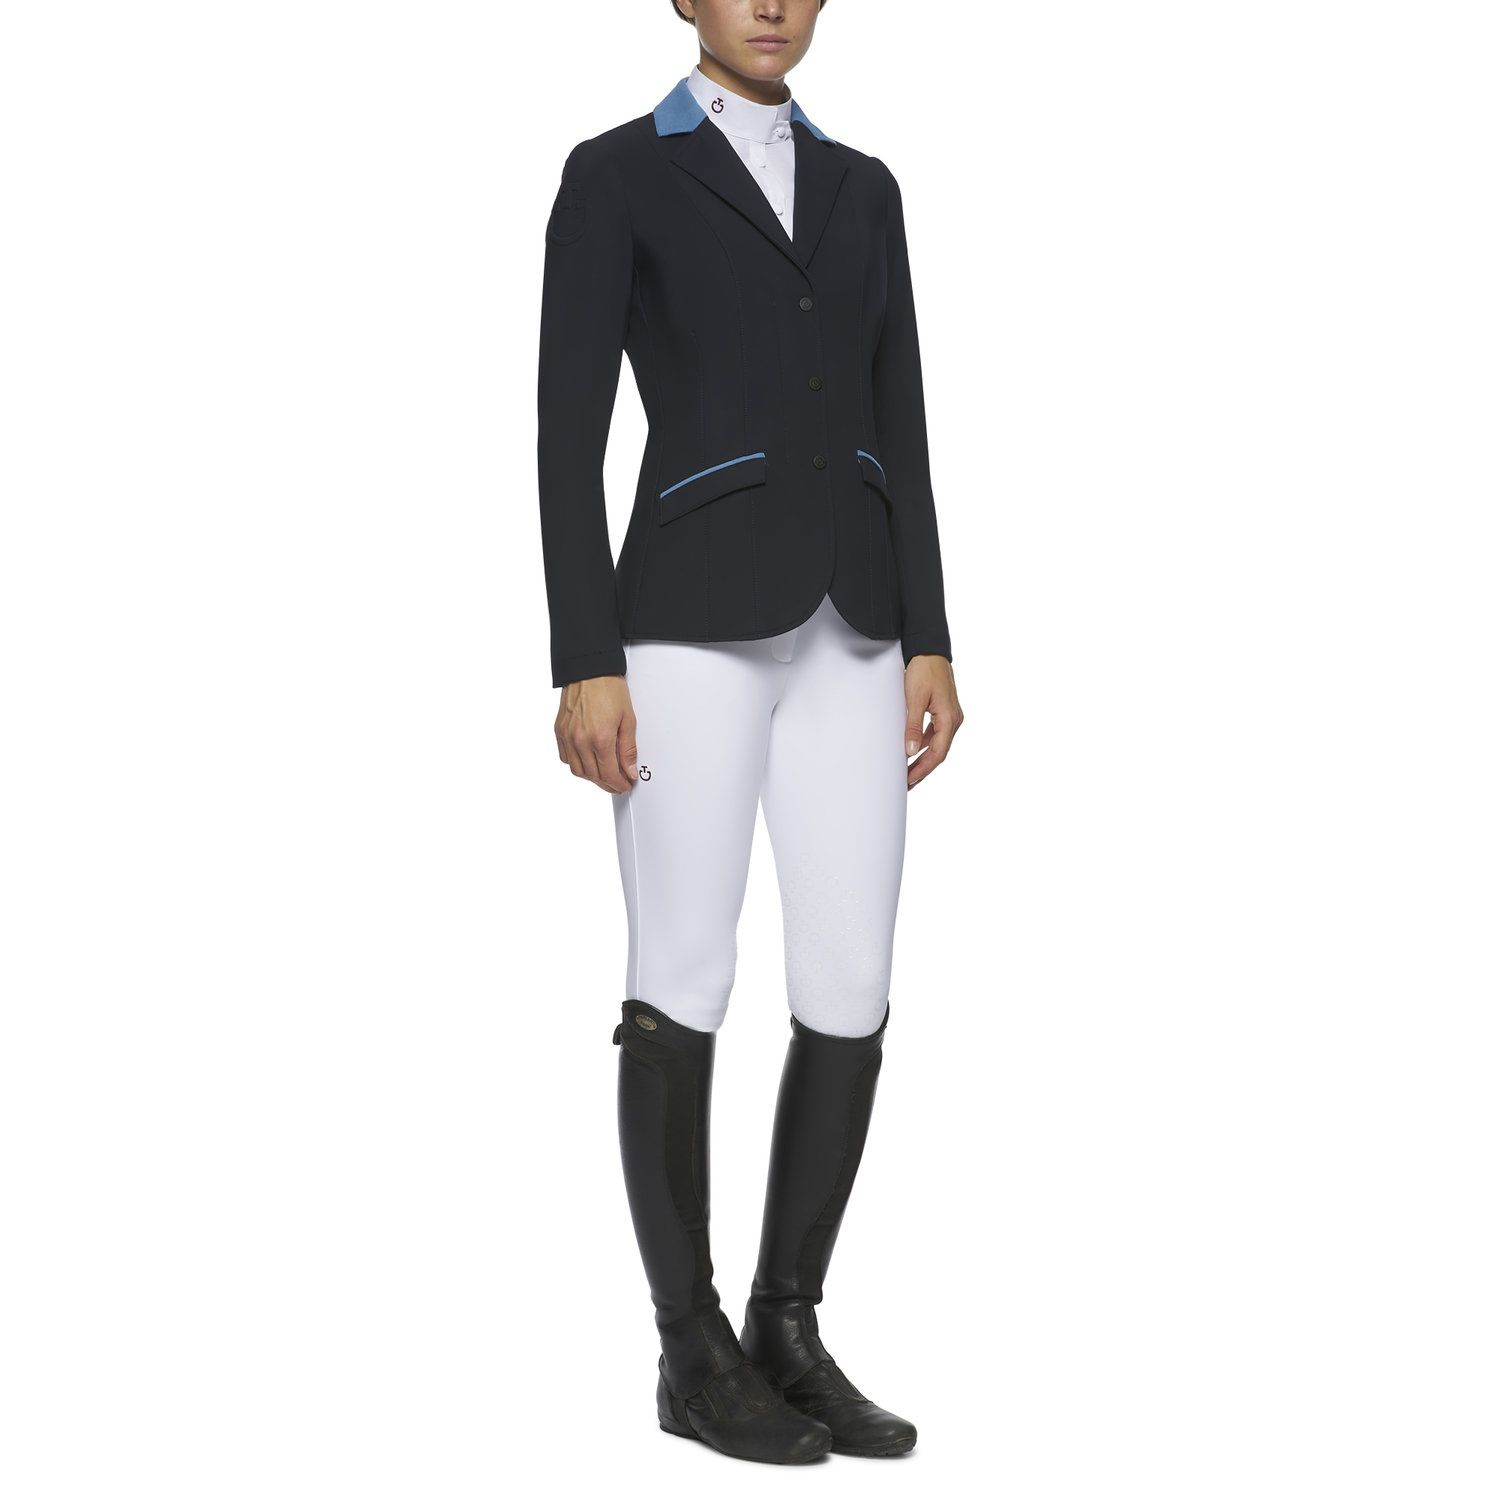 Women's zip and buttons riding jacket